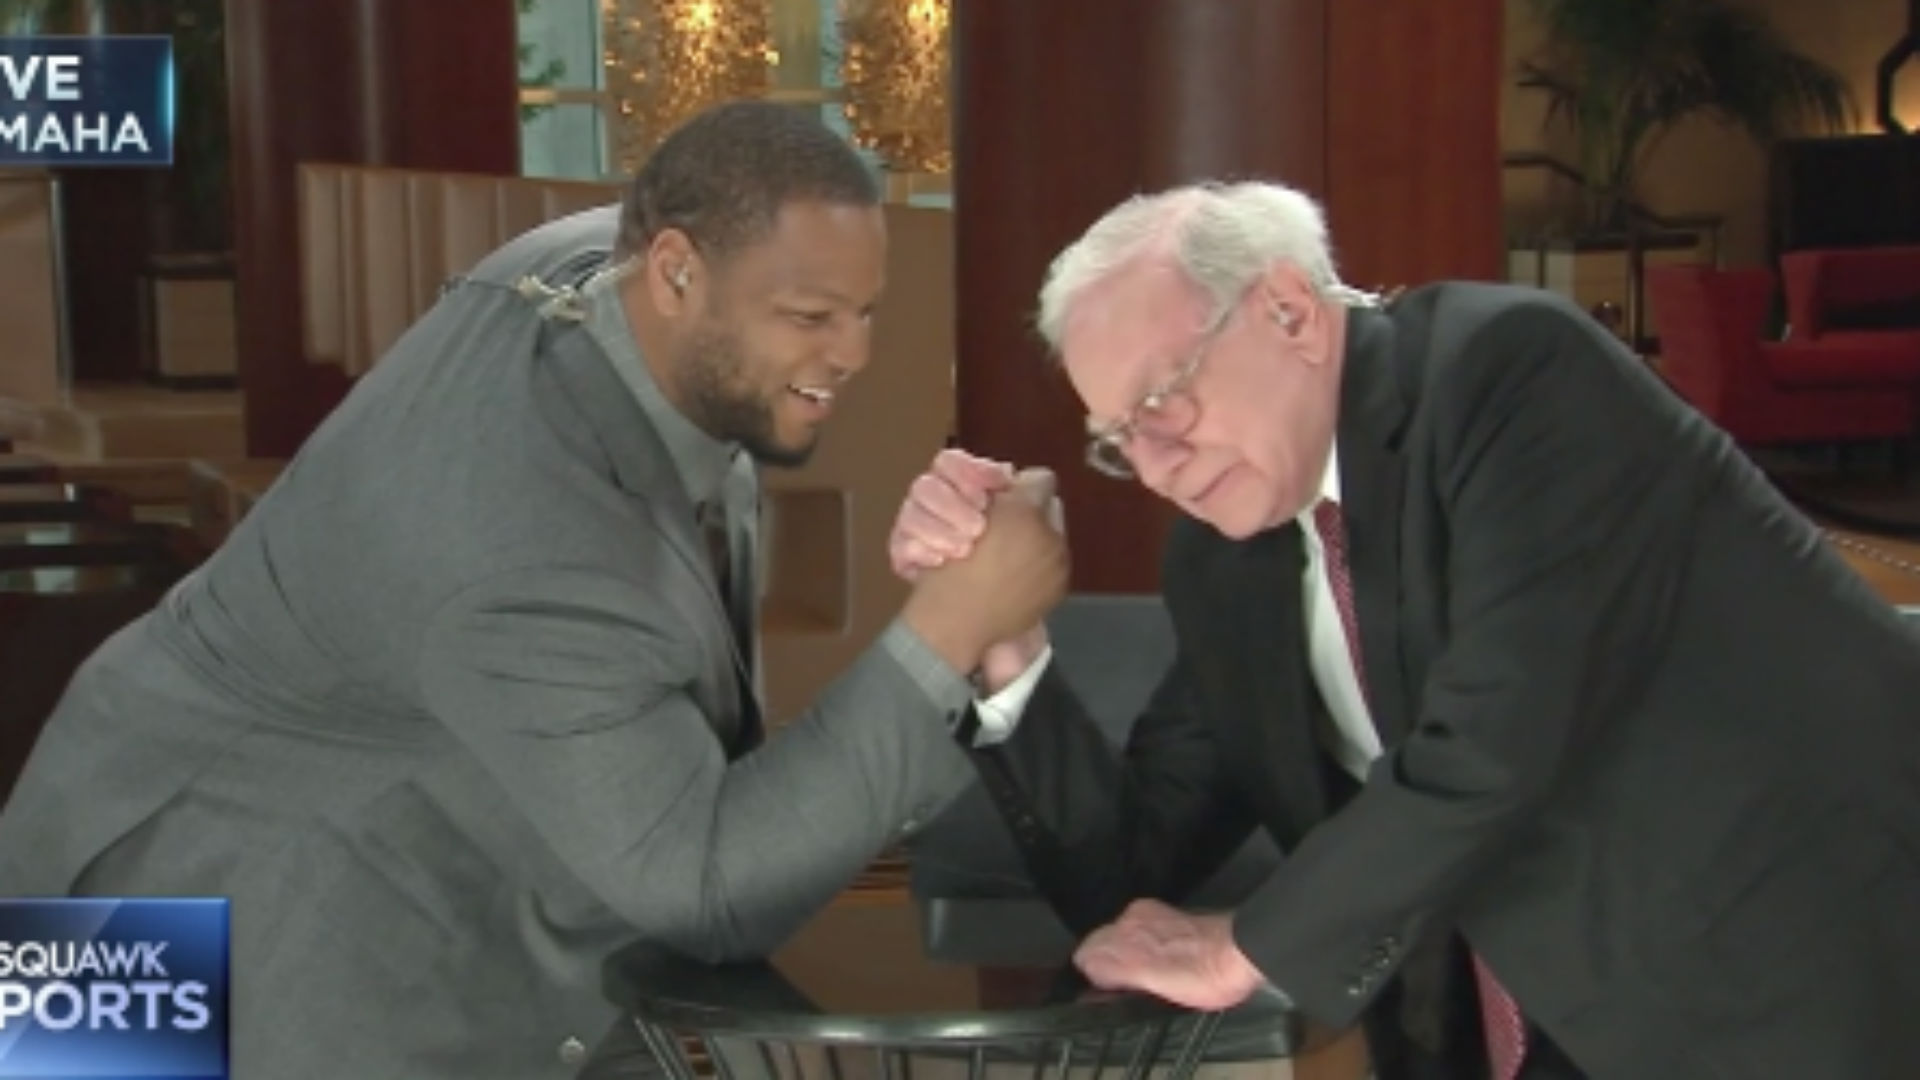 Warren Buffett beat Ndamukong Suh in arm wrestling